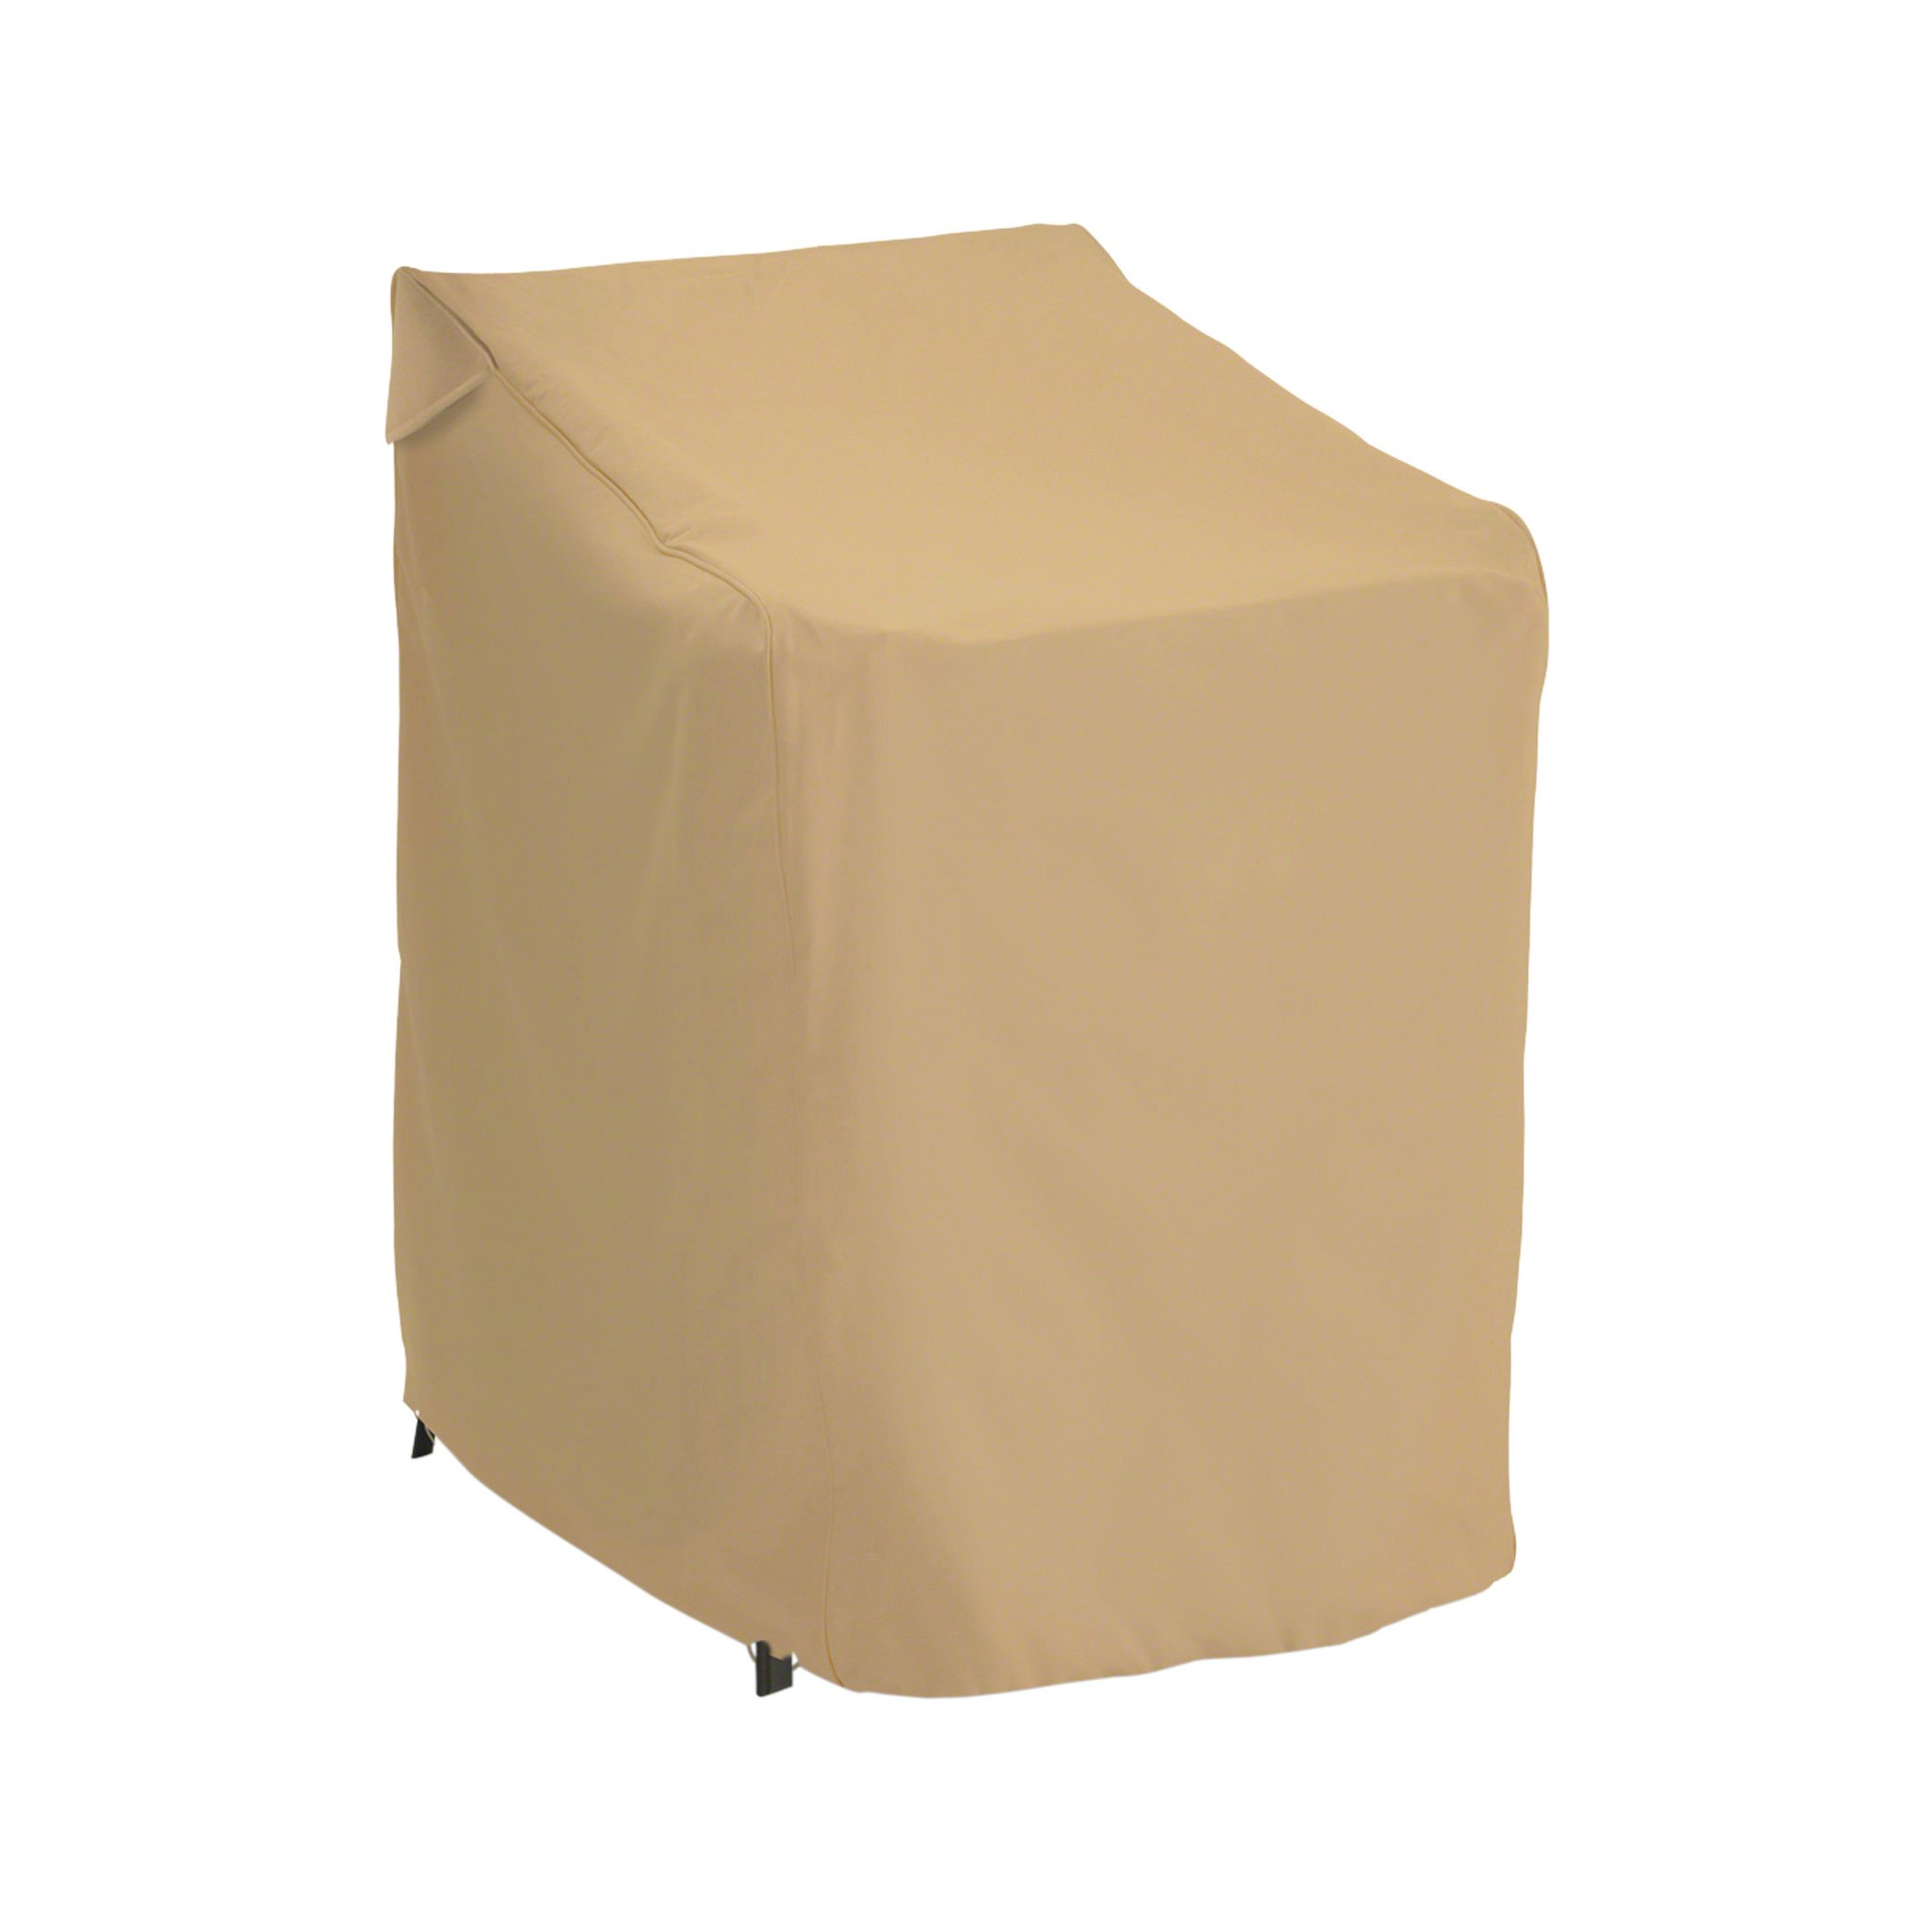 Classic Accessories Terrazzo Stackable Patio Chair Cover - All Weather Protection Outdoor Furniture Cover (58972-EC)